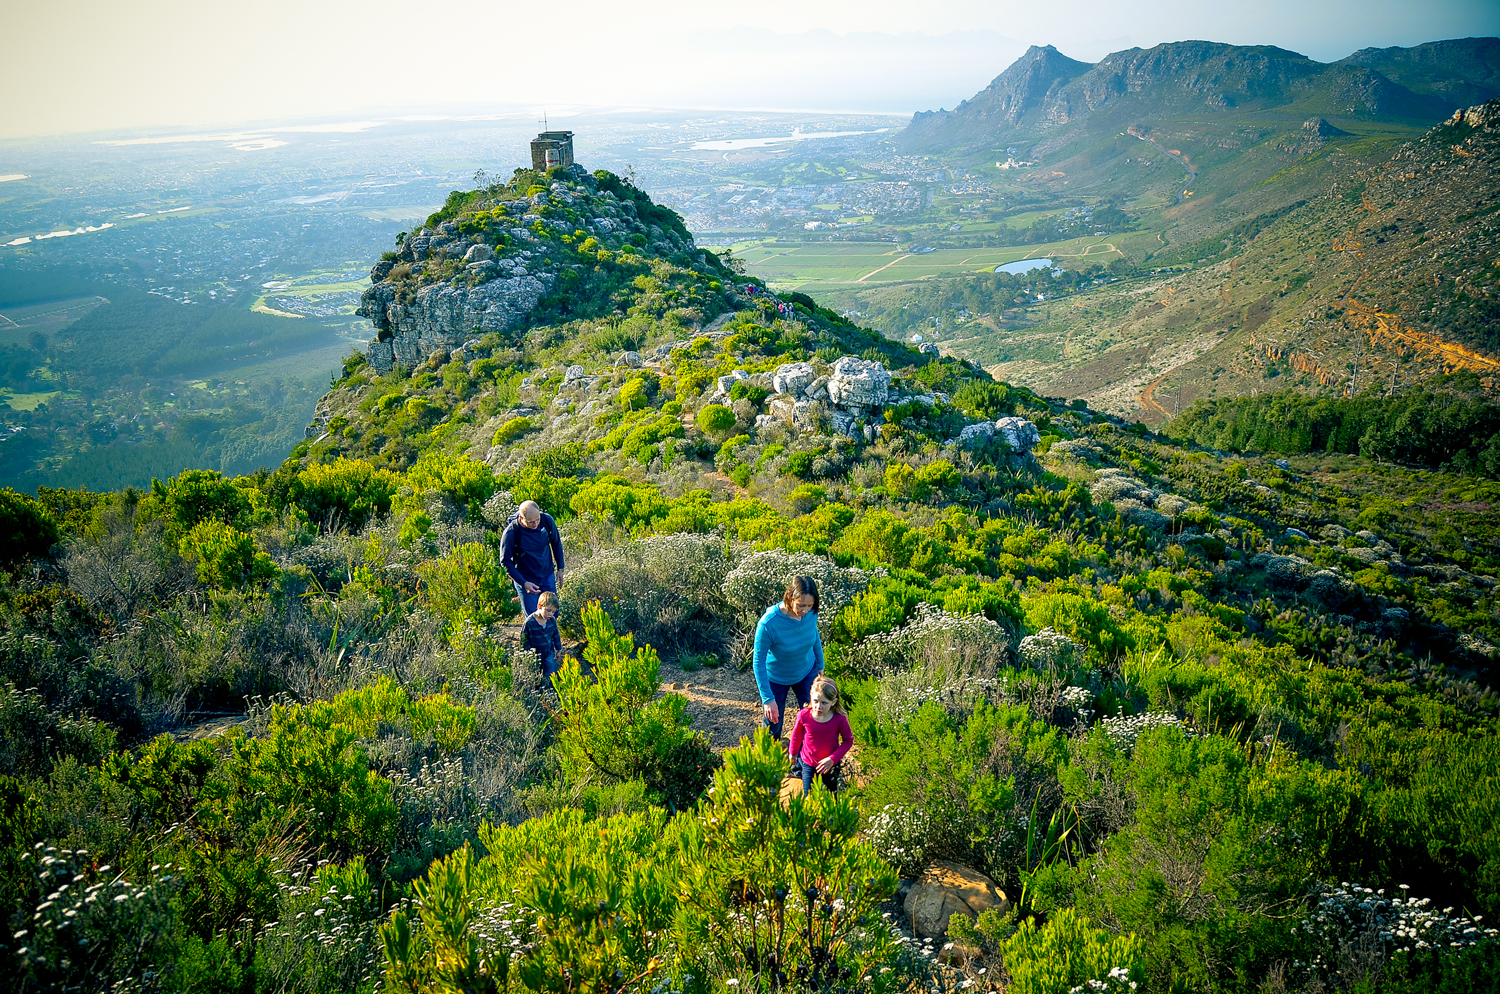 The Wenman Family, Elephant's Eye, Silvermine